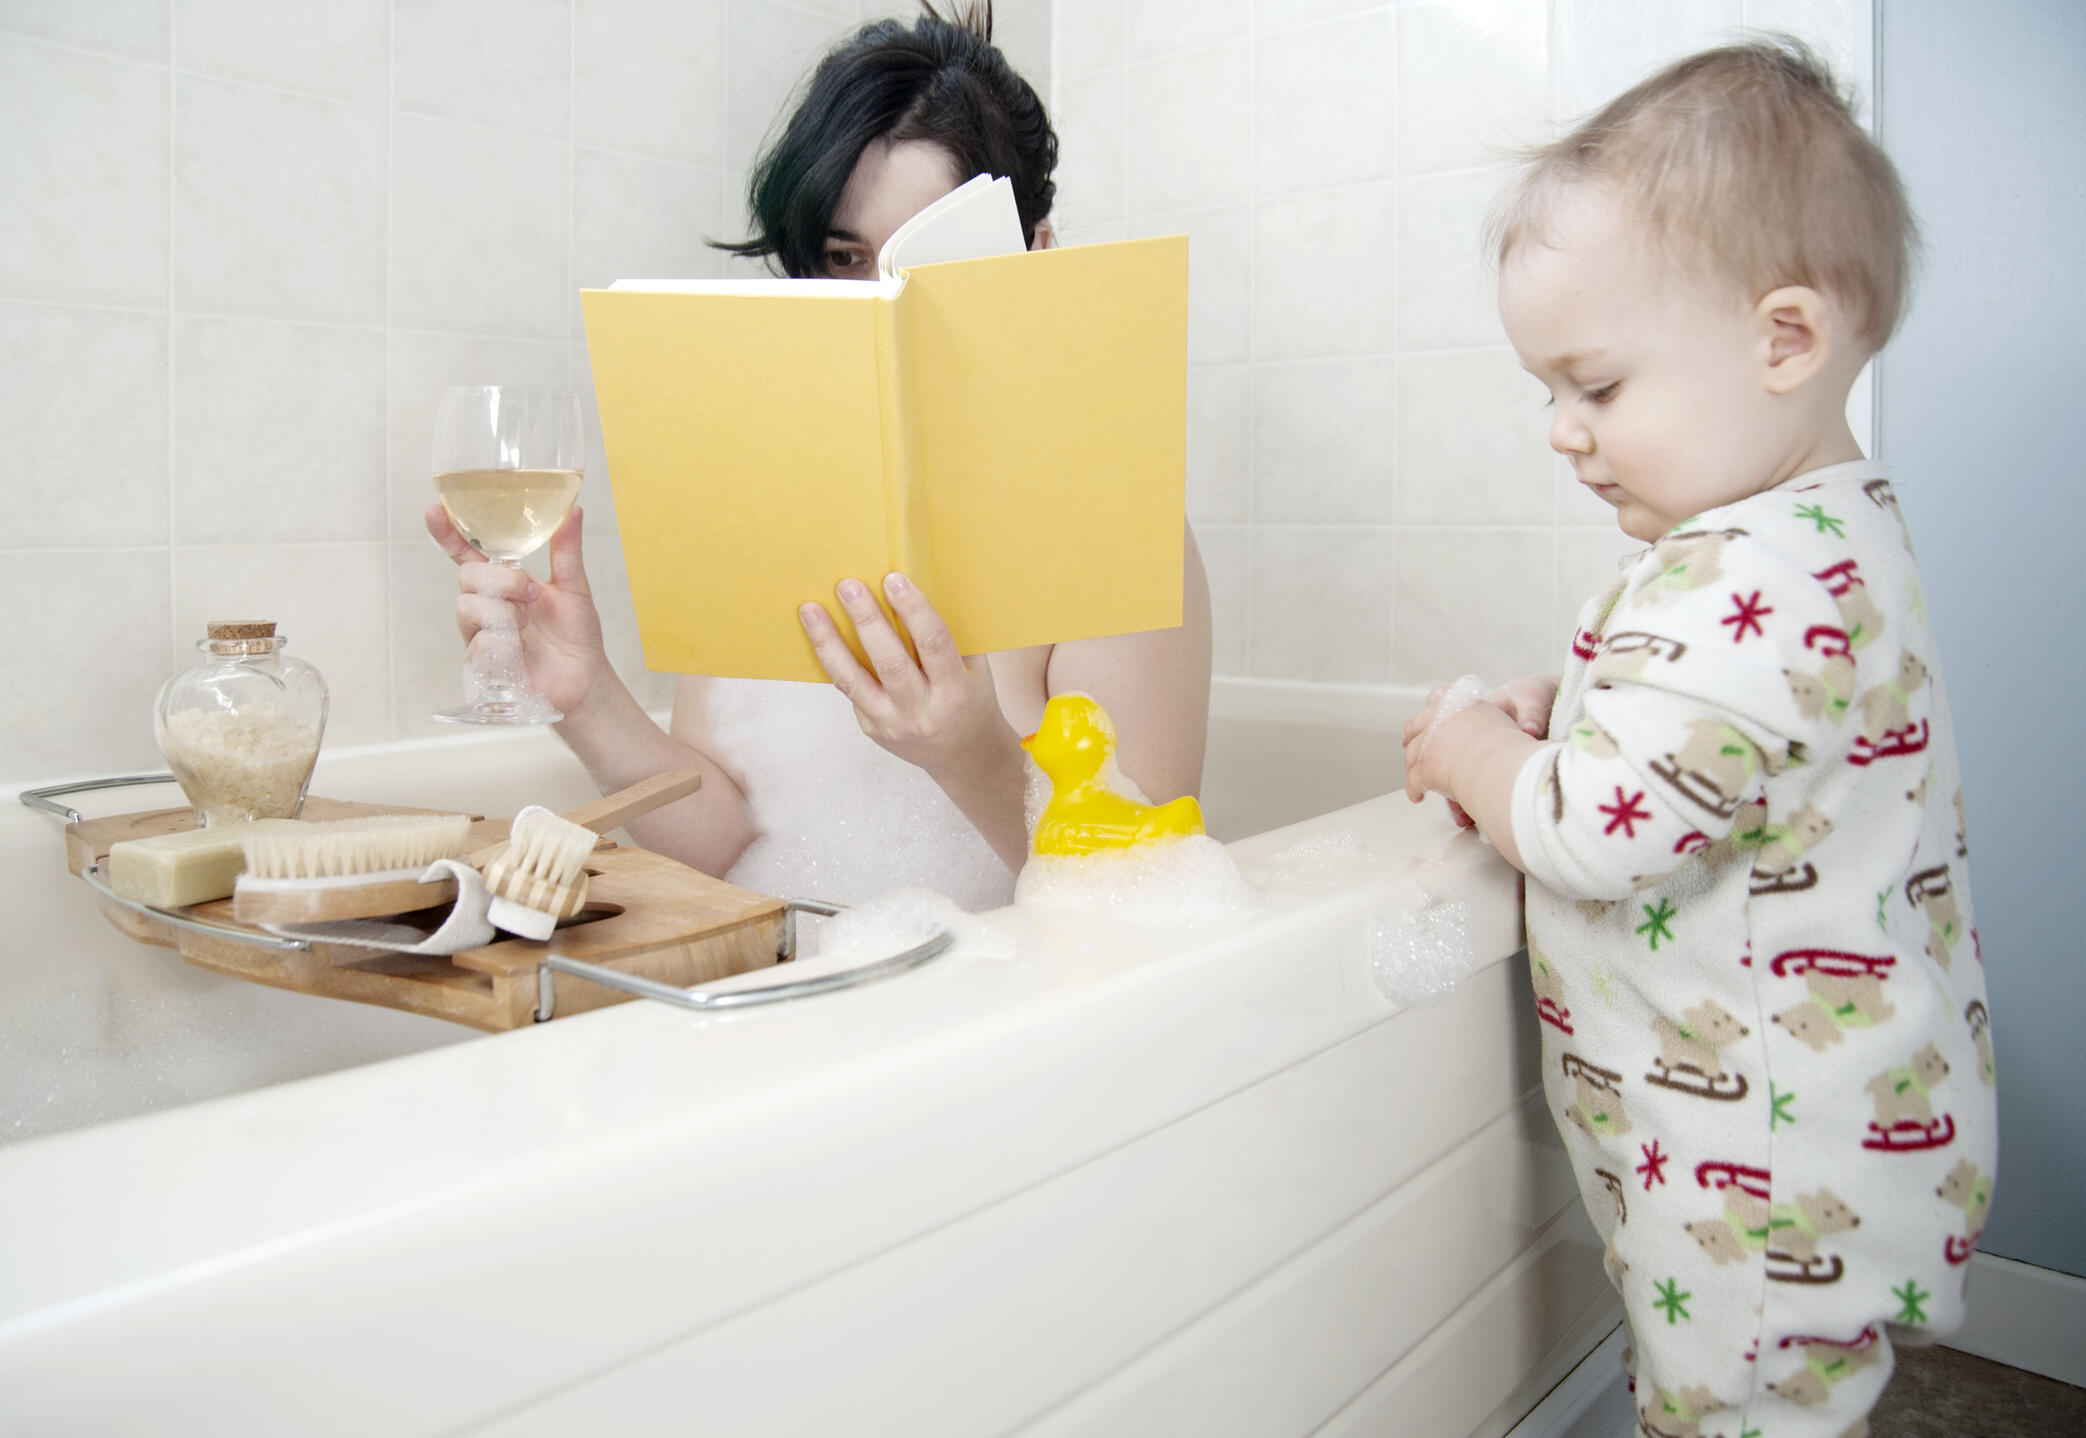 Mother in bathtub with glass of wine relaxing and toddler standing beside tub playing with toy